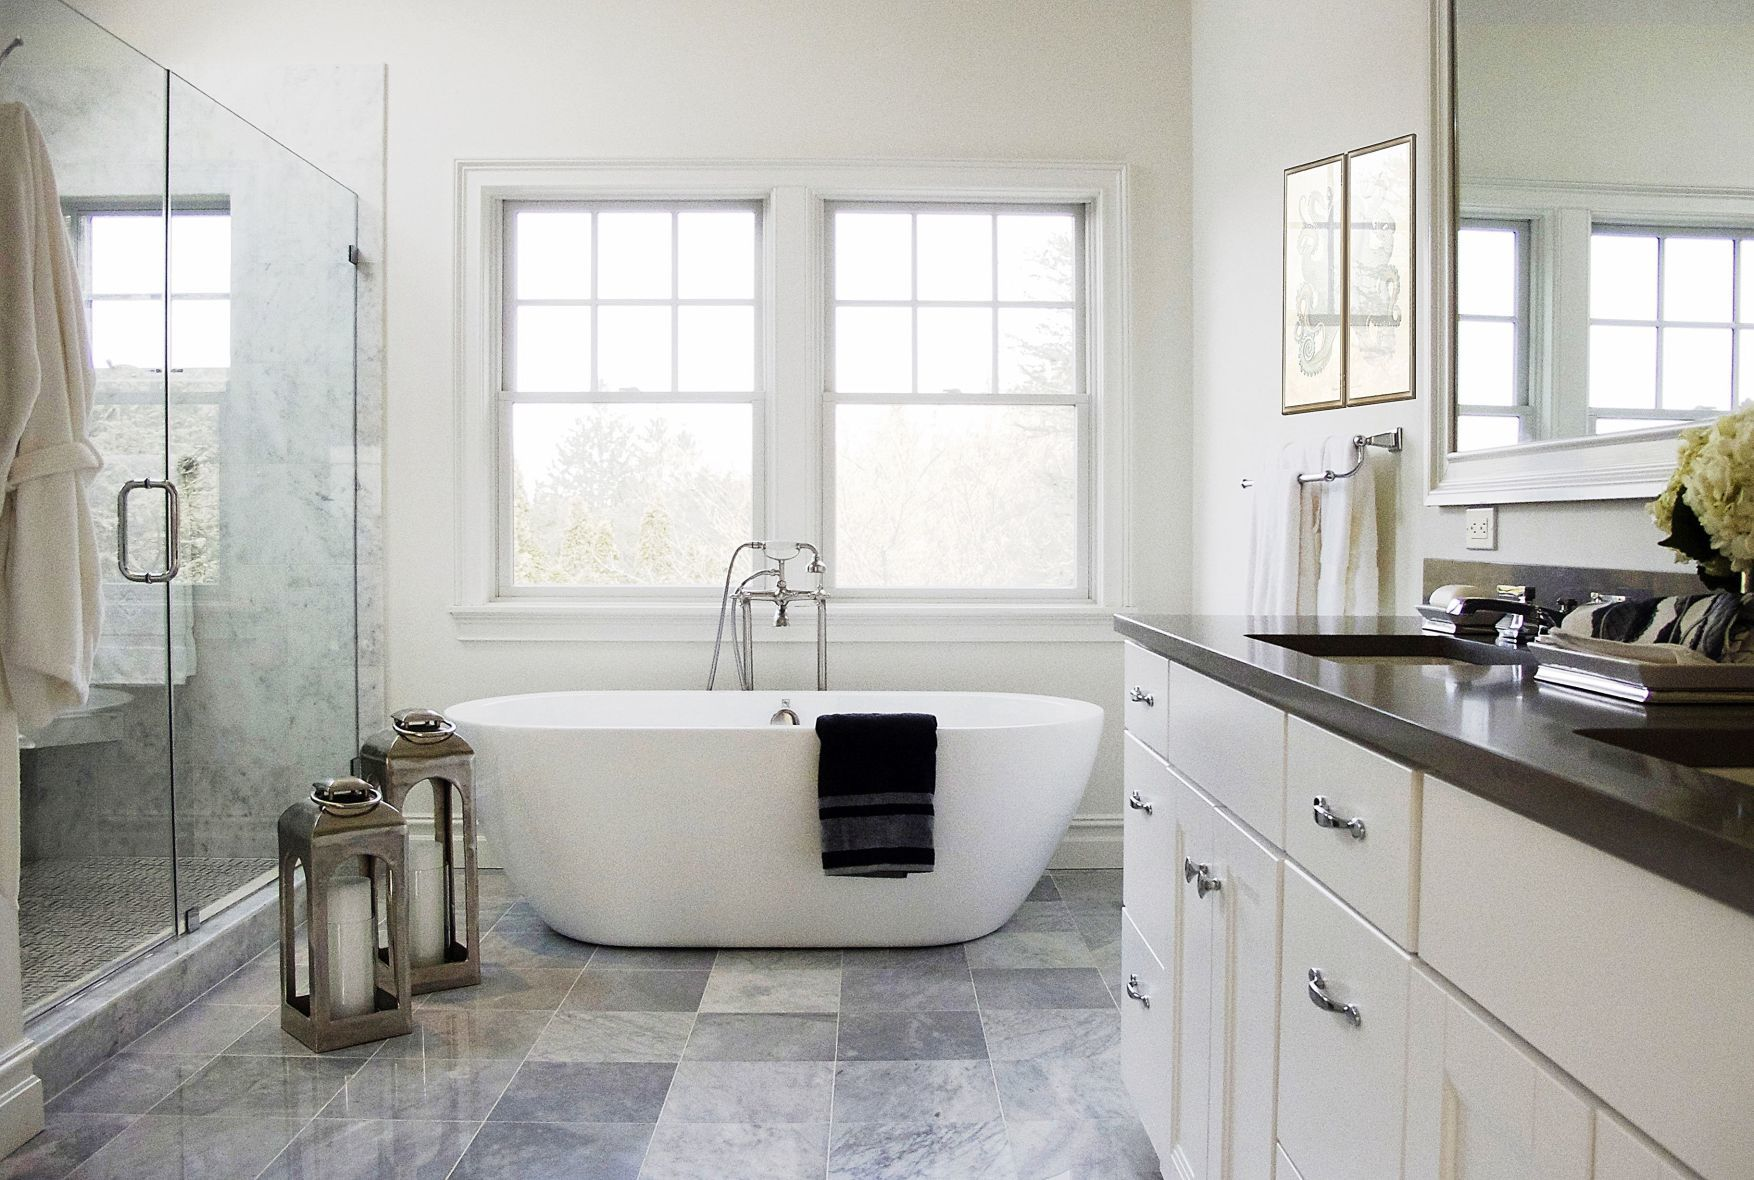 Bathroom Five Ideas To Freshen A Bathroom On A Budget Inspired Living